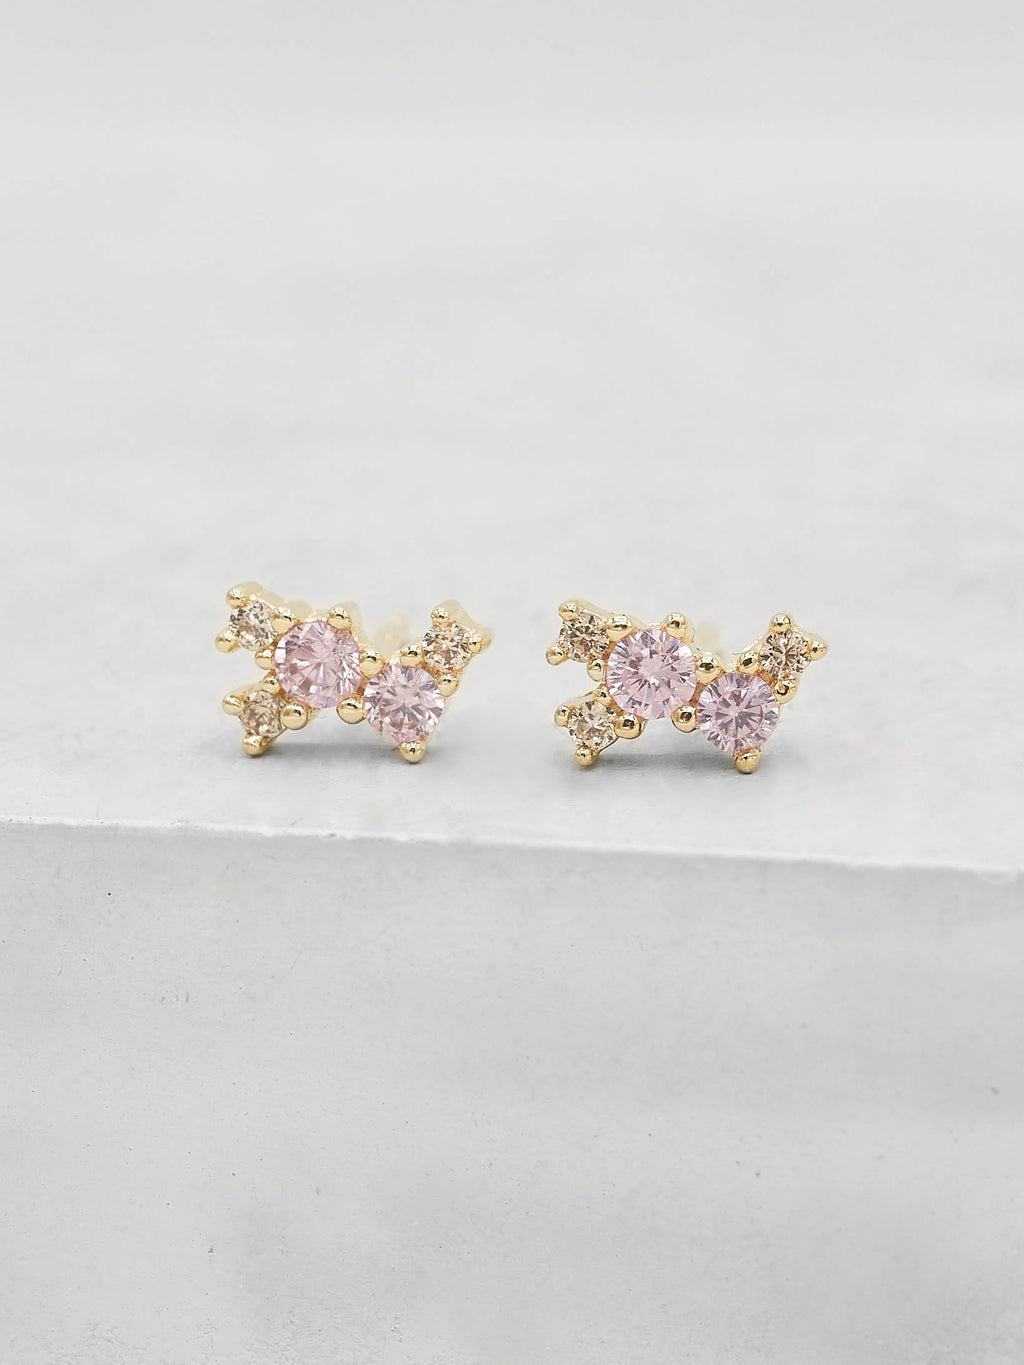 Gold Plated Pink and Champagne CZ Cubic Zirconia Twilight Style Stud dainty Stud Earrings by The Faint Hearted jewelry